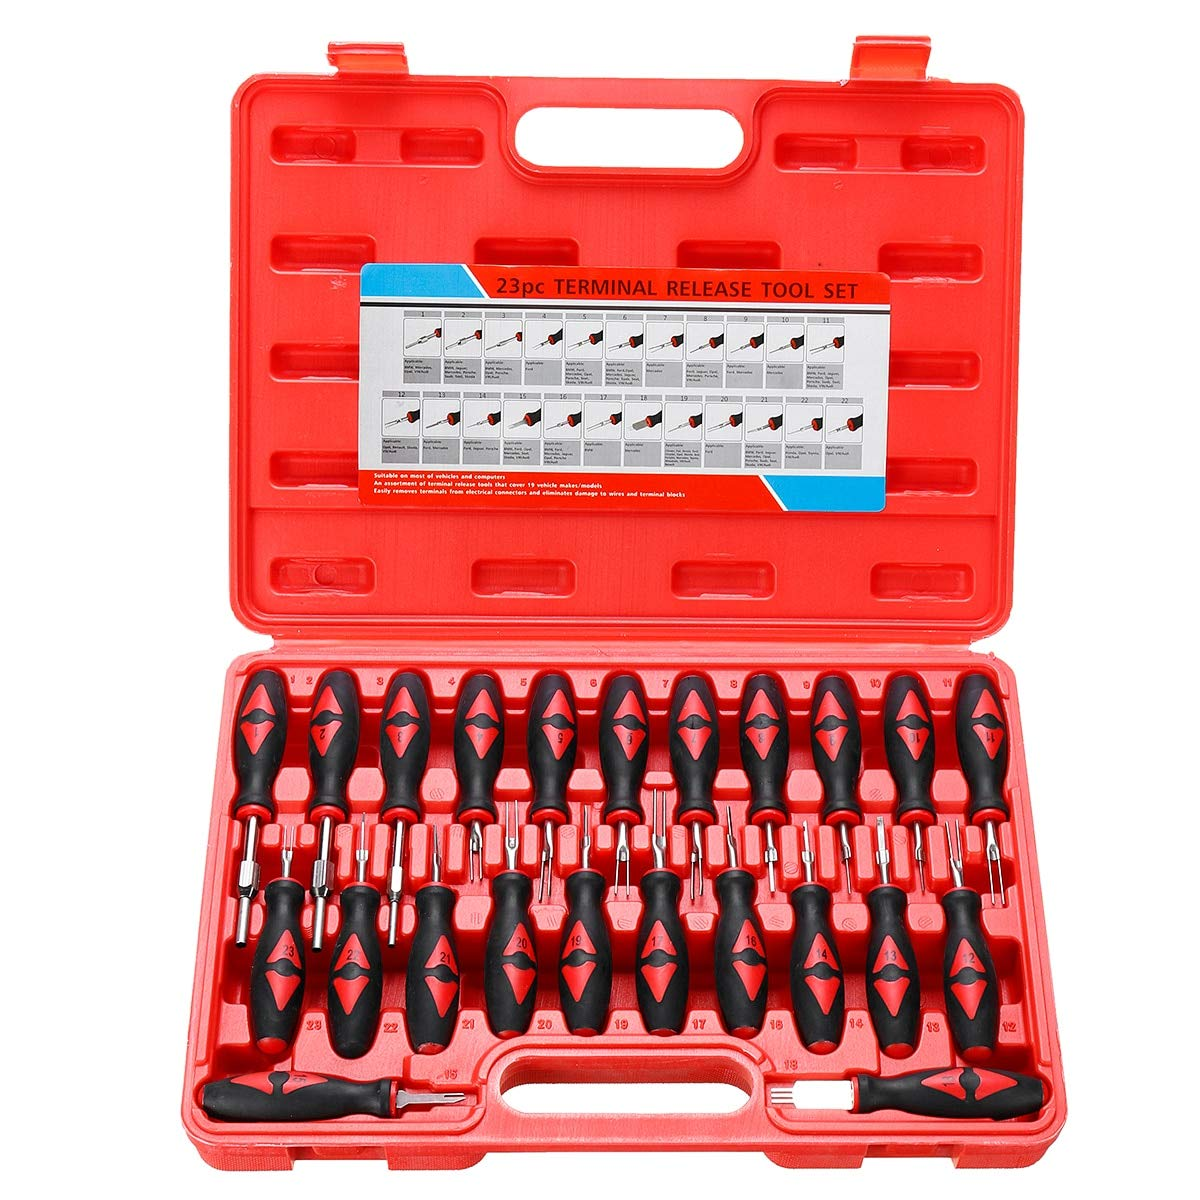 Kul-Kul - 23PCS Universal Terminal Release Tools Set Harness Connector Remover Tool Package Hand Tool Kit with Plastic Toolbox Storage by Kul-Kul (Image #2)